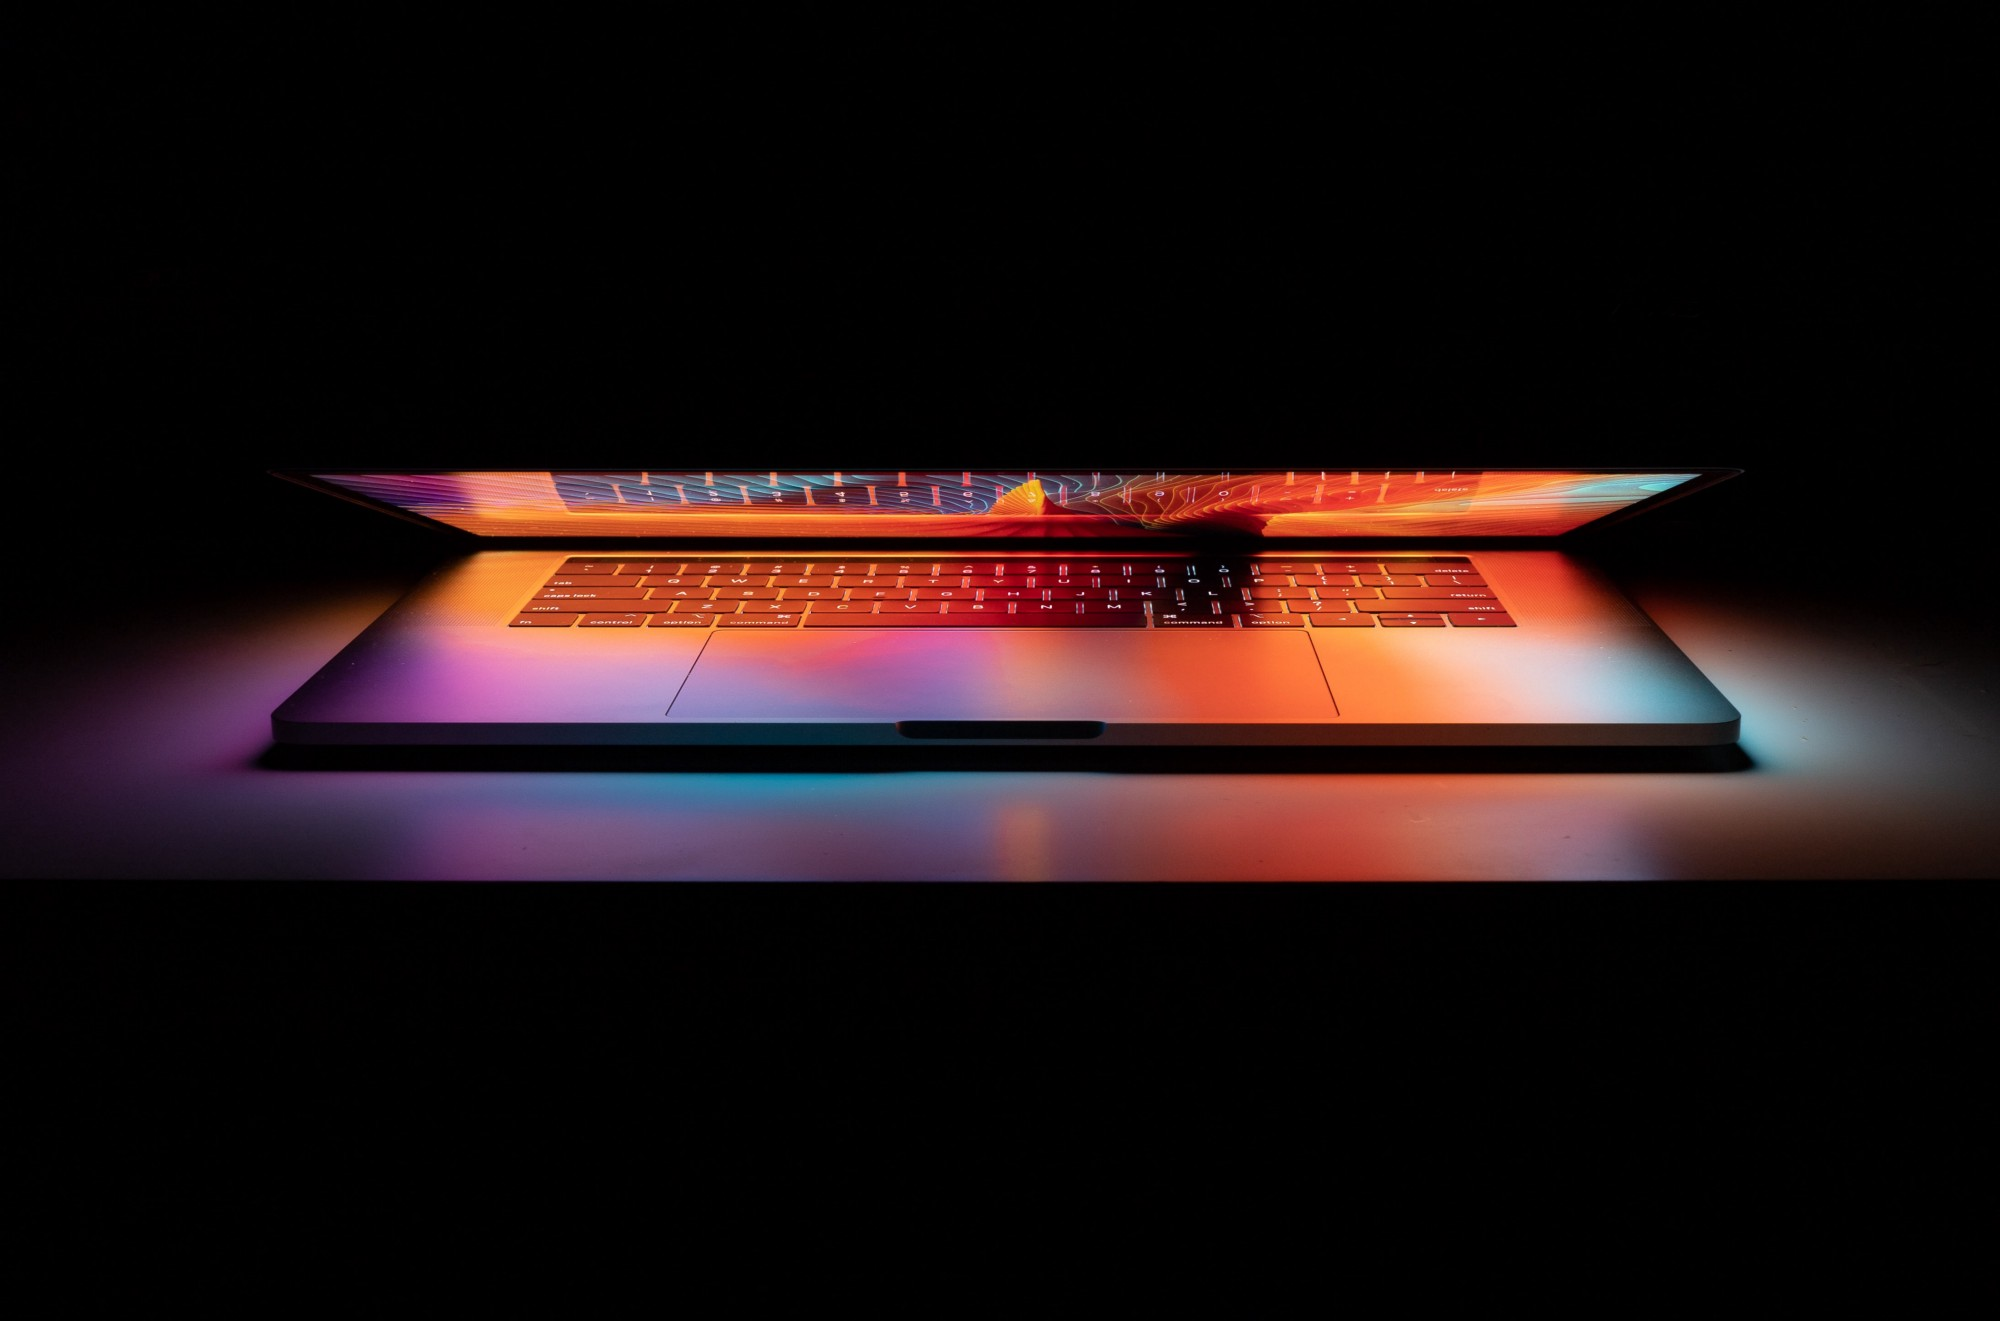 Apple computer for ios developing using swiftui